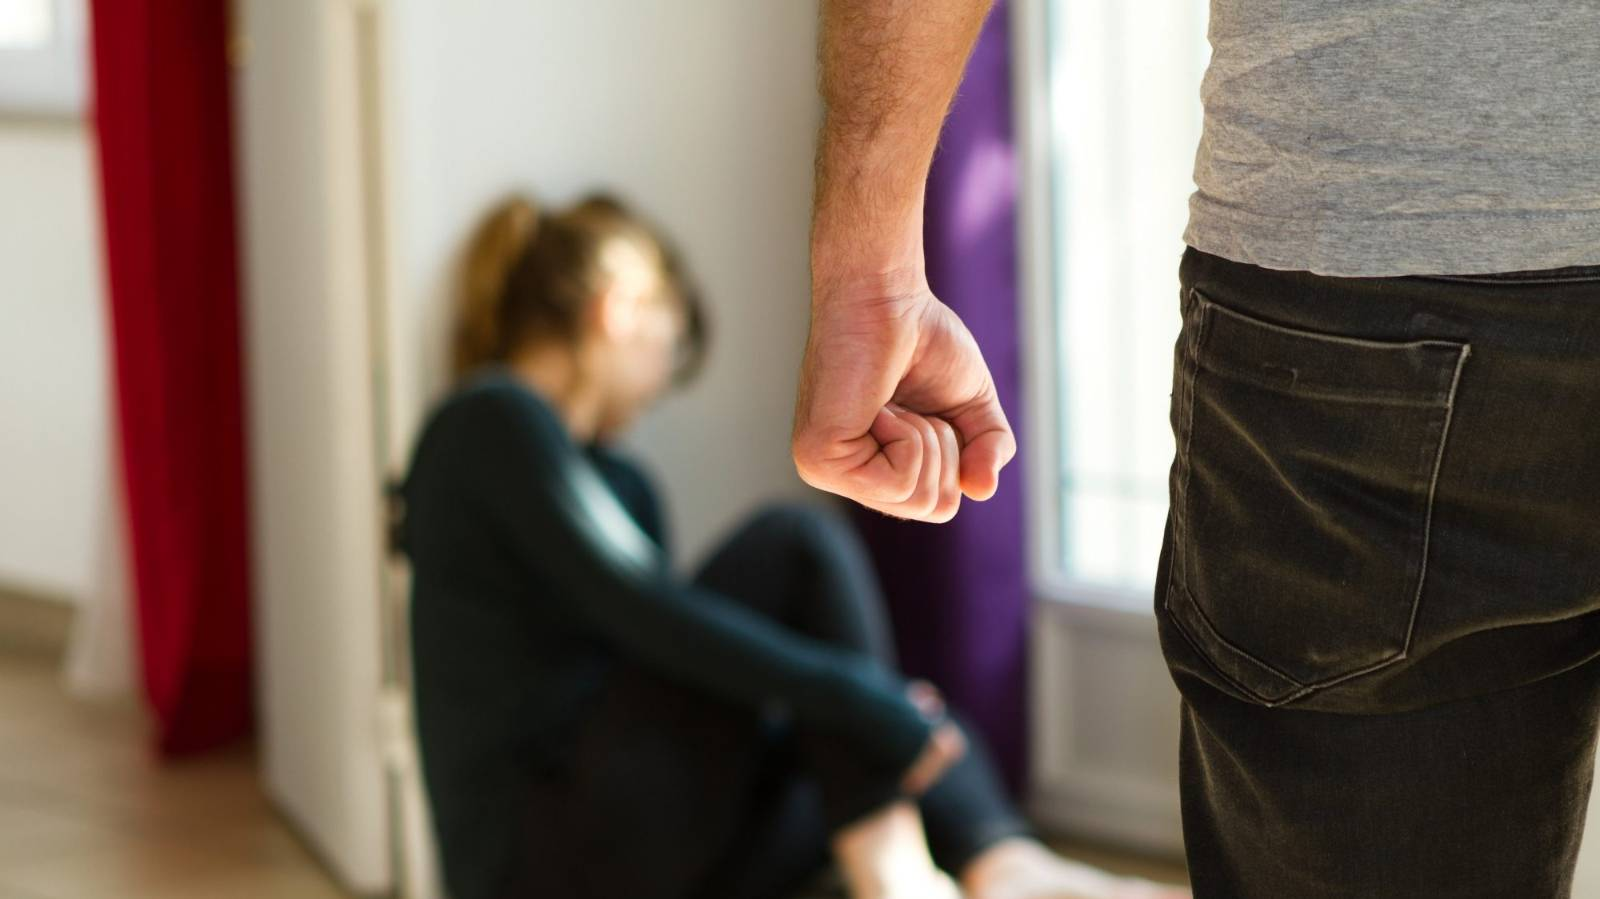 Recruitment company asks applicants to reveal family violence history